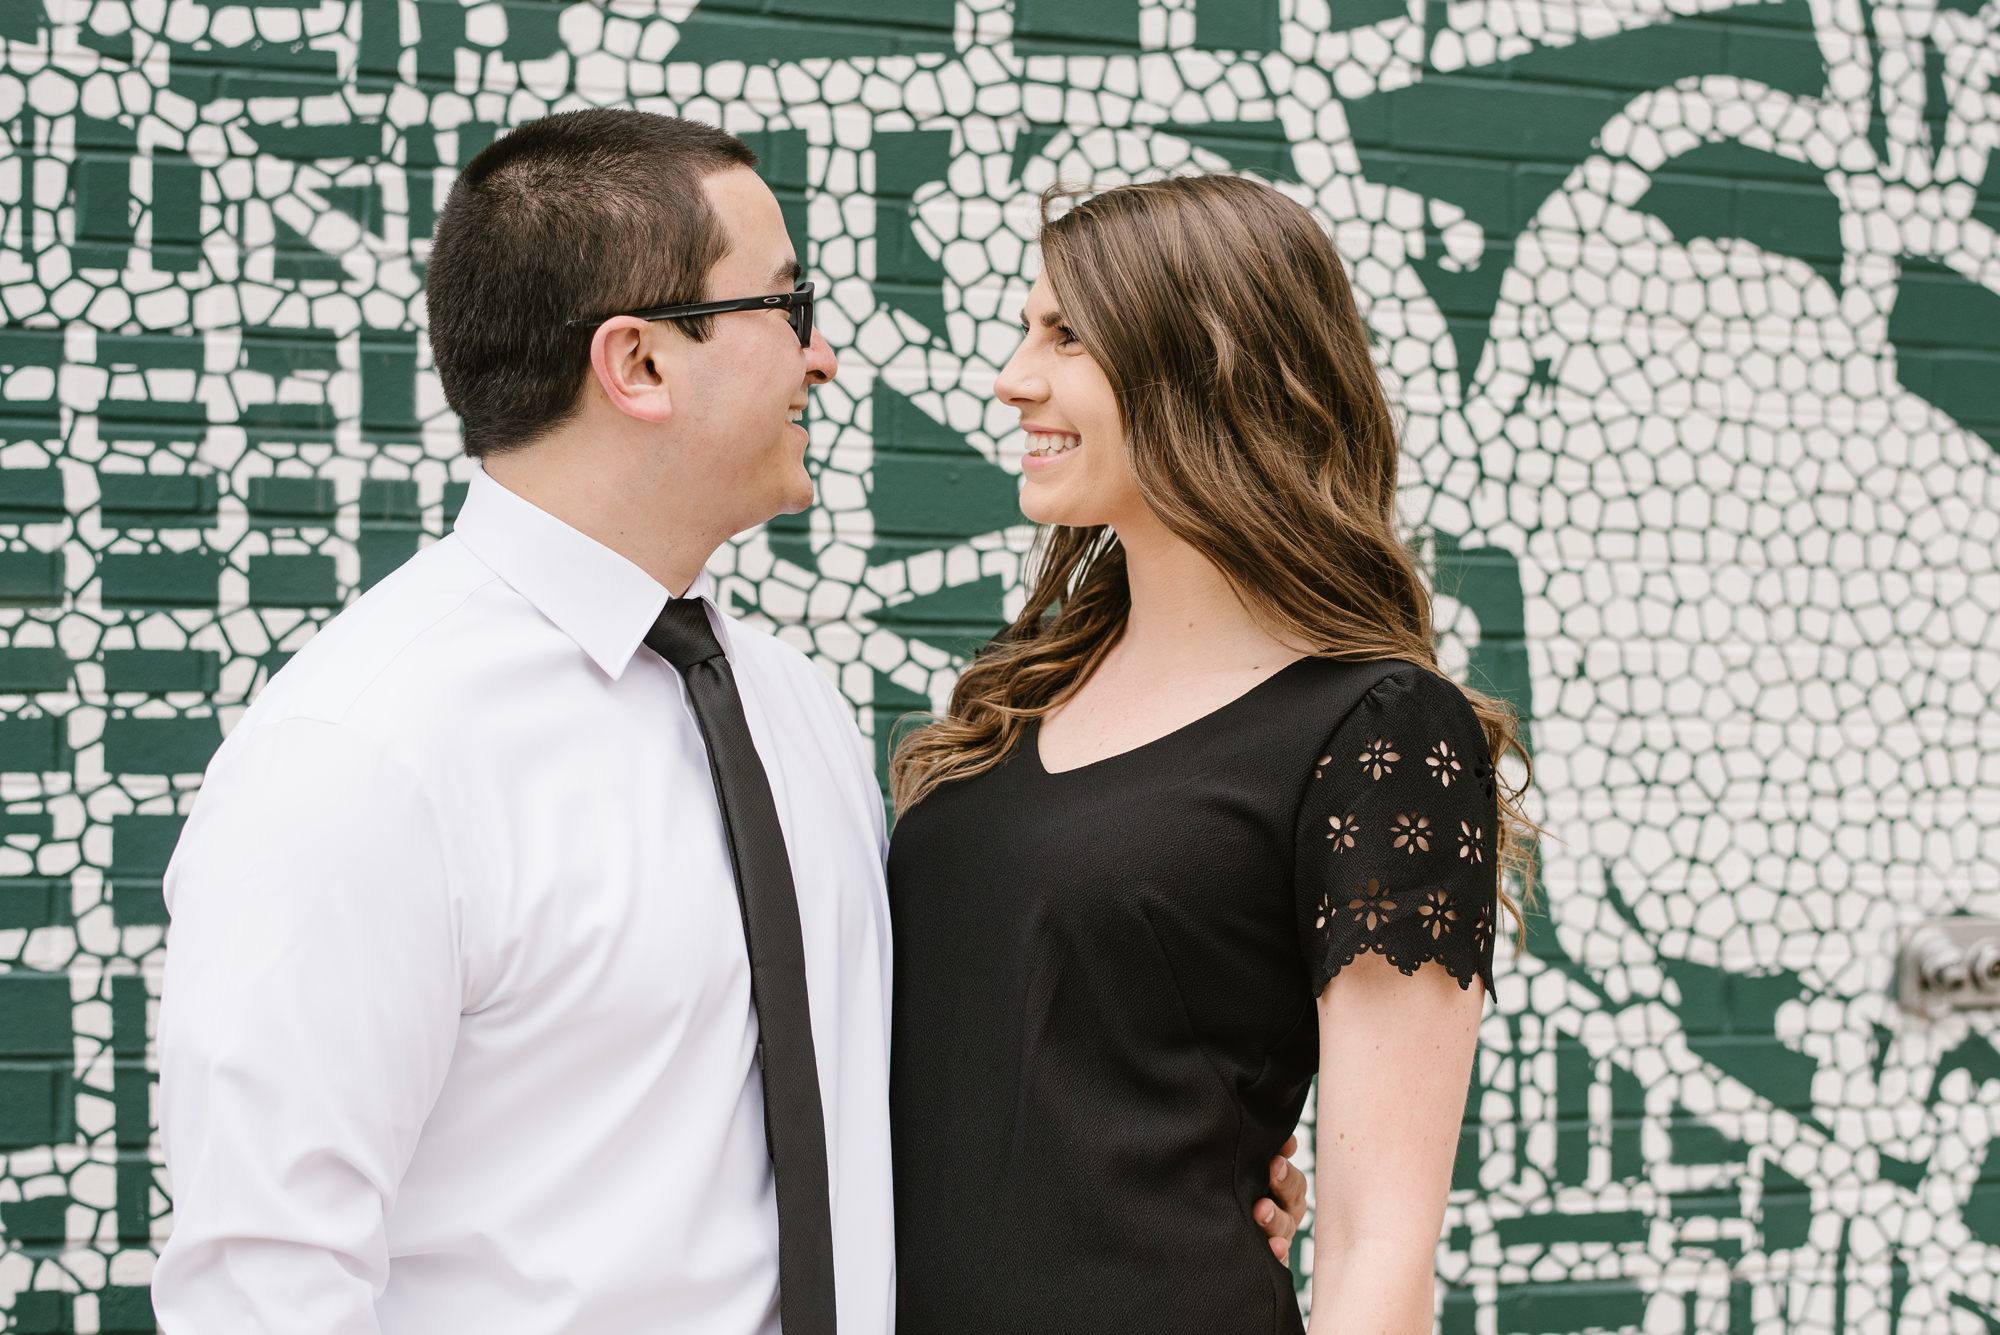 grand-rapids-downtown-spring-engagement-session (3).jpg